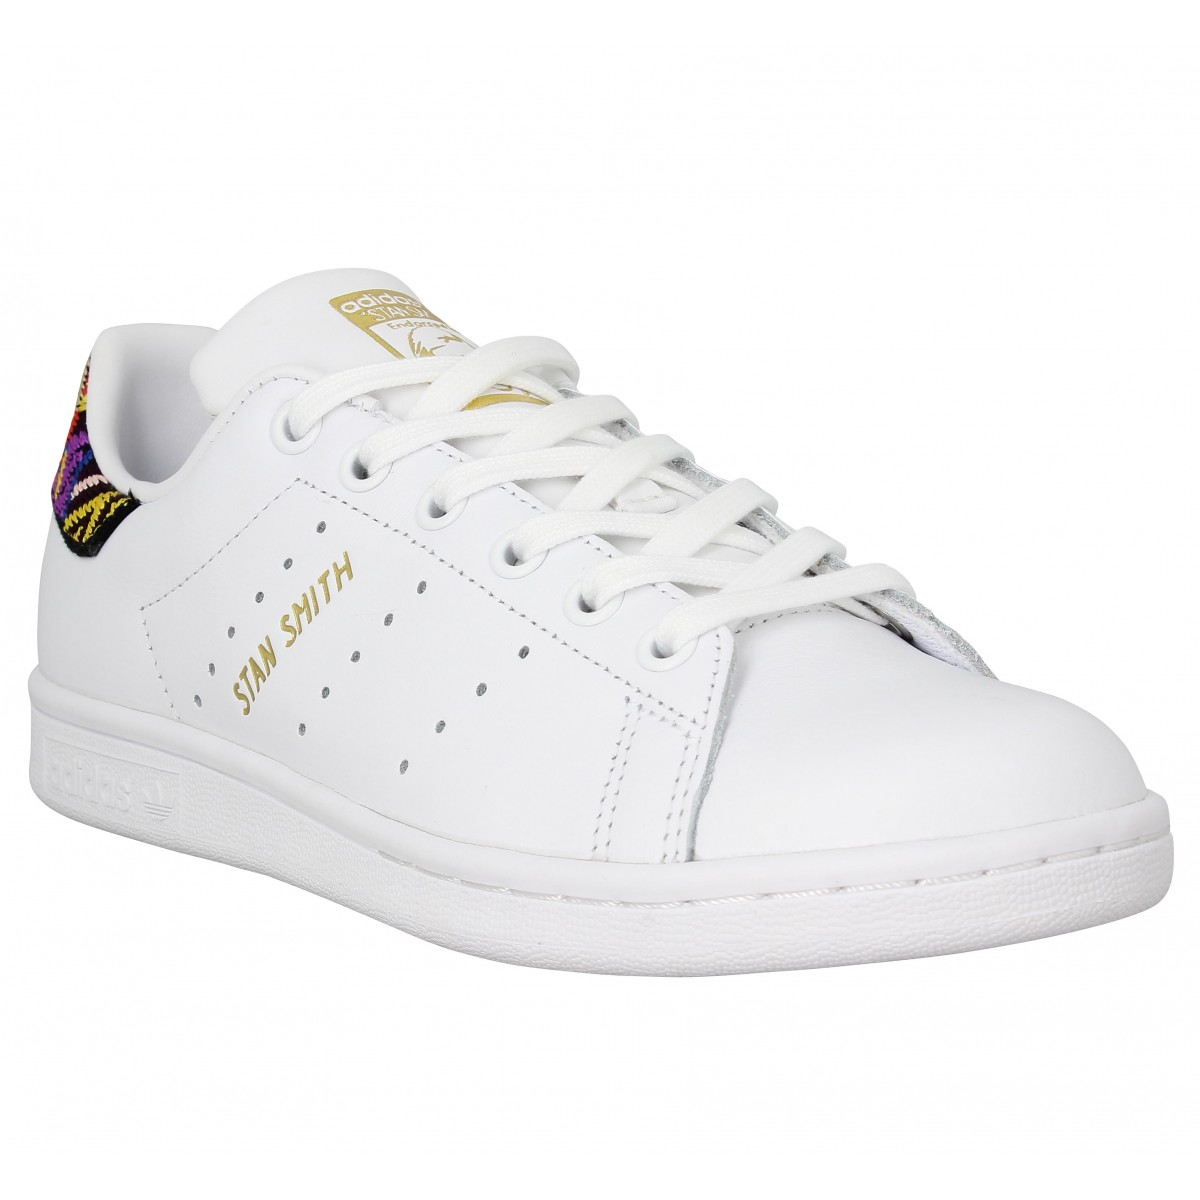 Blanc Adidas Sneakers Adidas Stan Smith